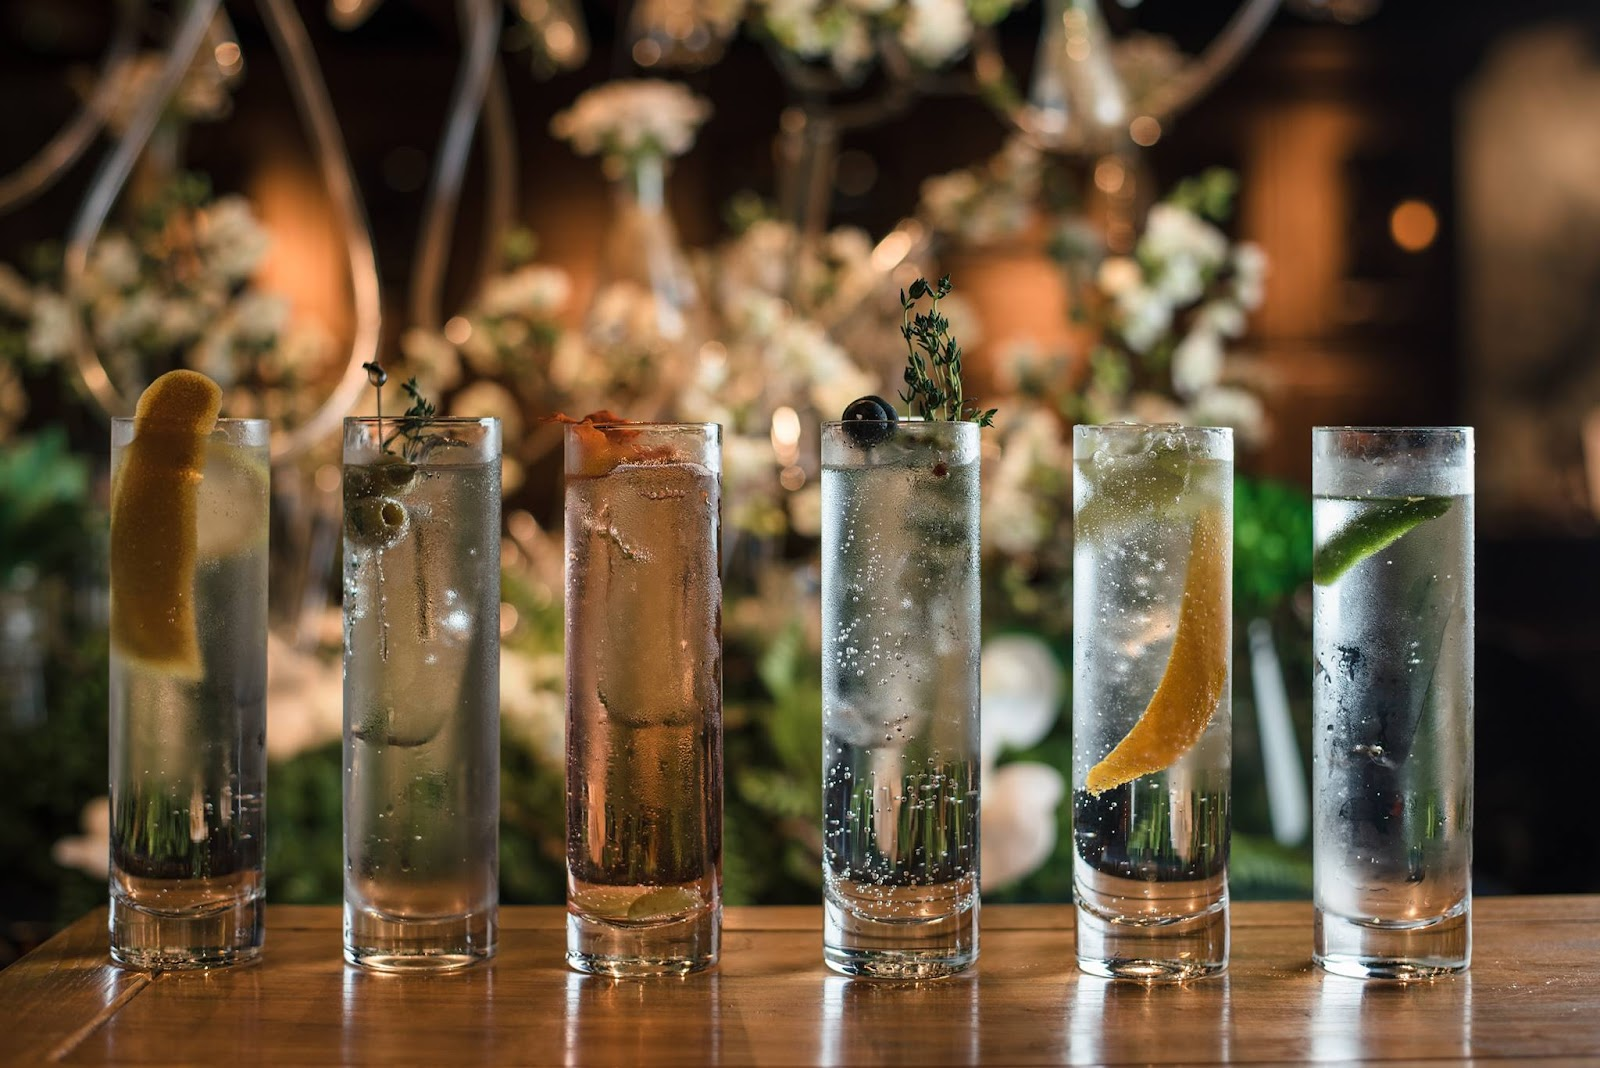 Dr. Fern's specialty gins